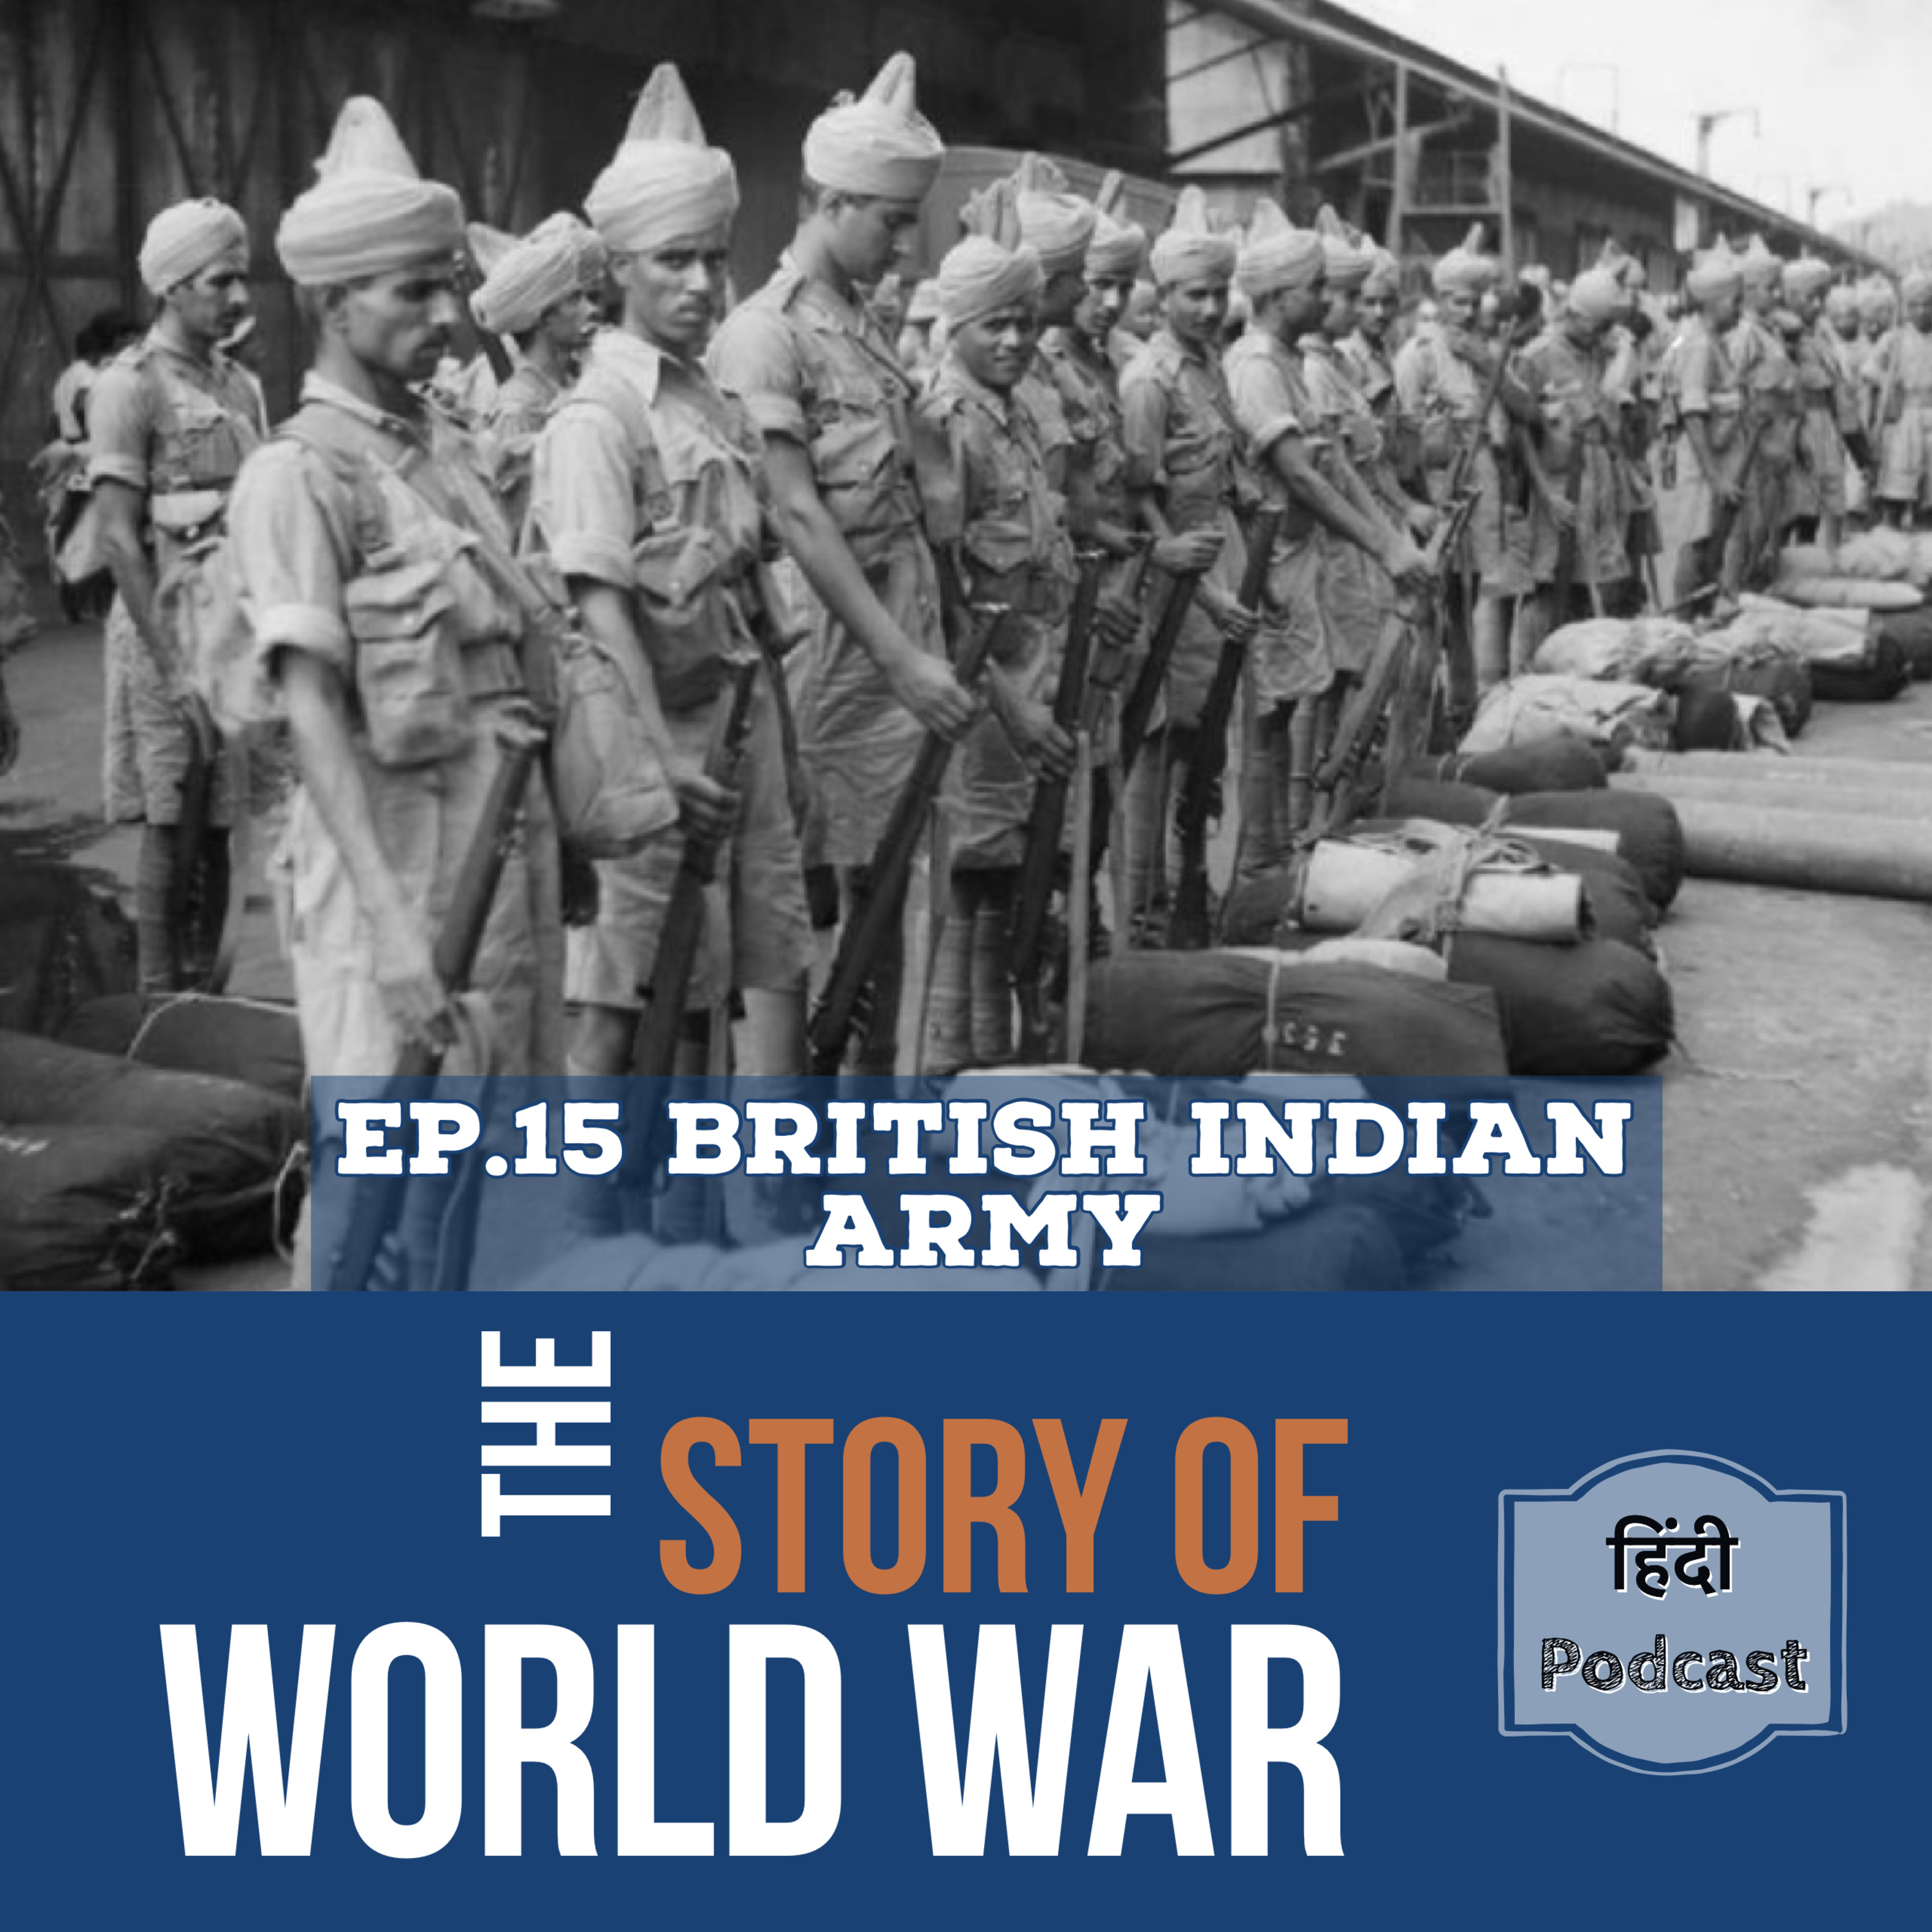 #36 WORLD WAR | Ep.15 British Indian Army in WW1 | विश्व युद्ध १